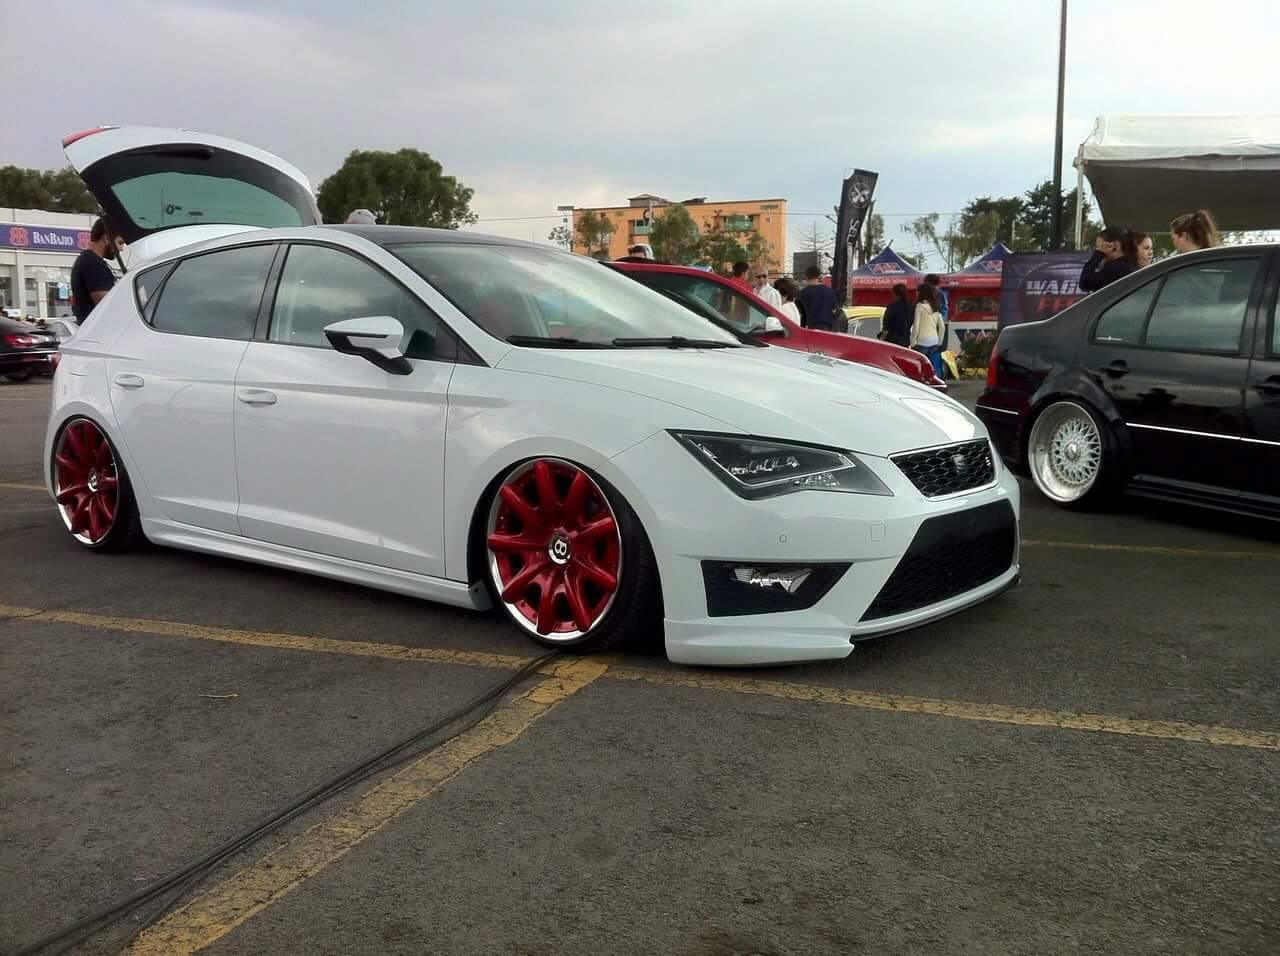 seat leon 5f lowrider with red bentley wheels resides in. Black Bedroom Furniture Sets. Home Design Ideas